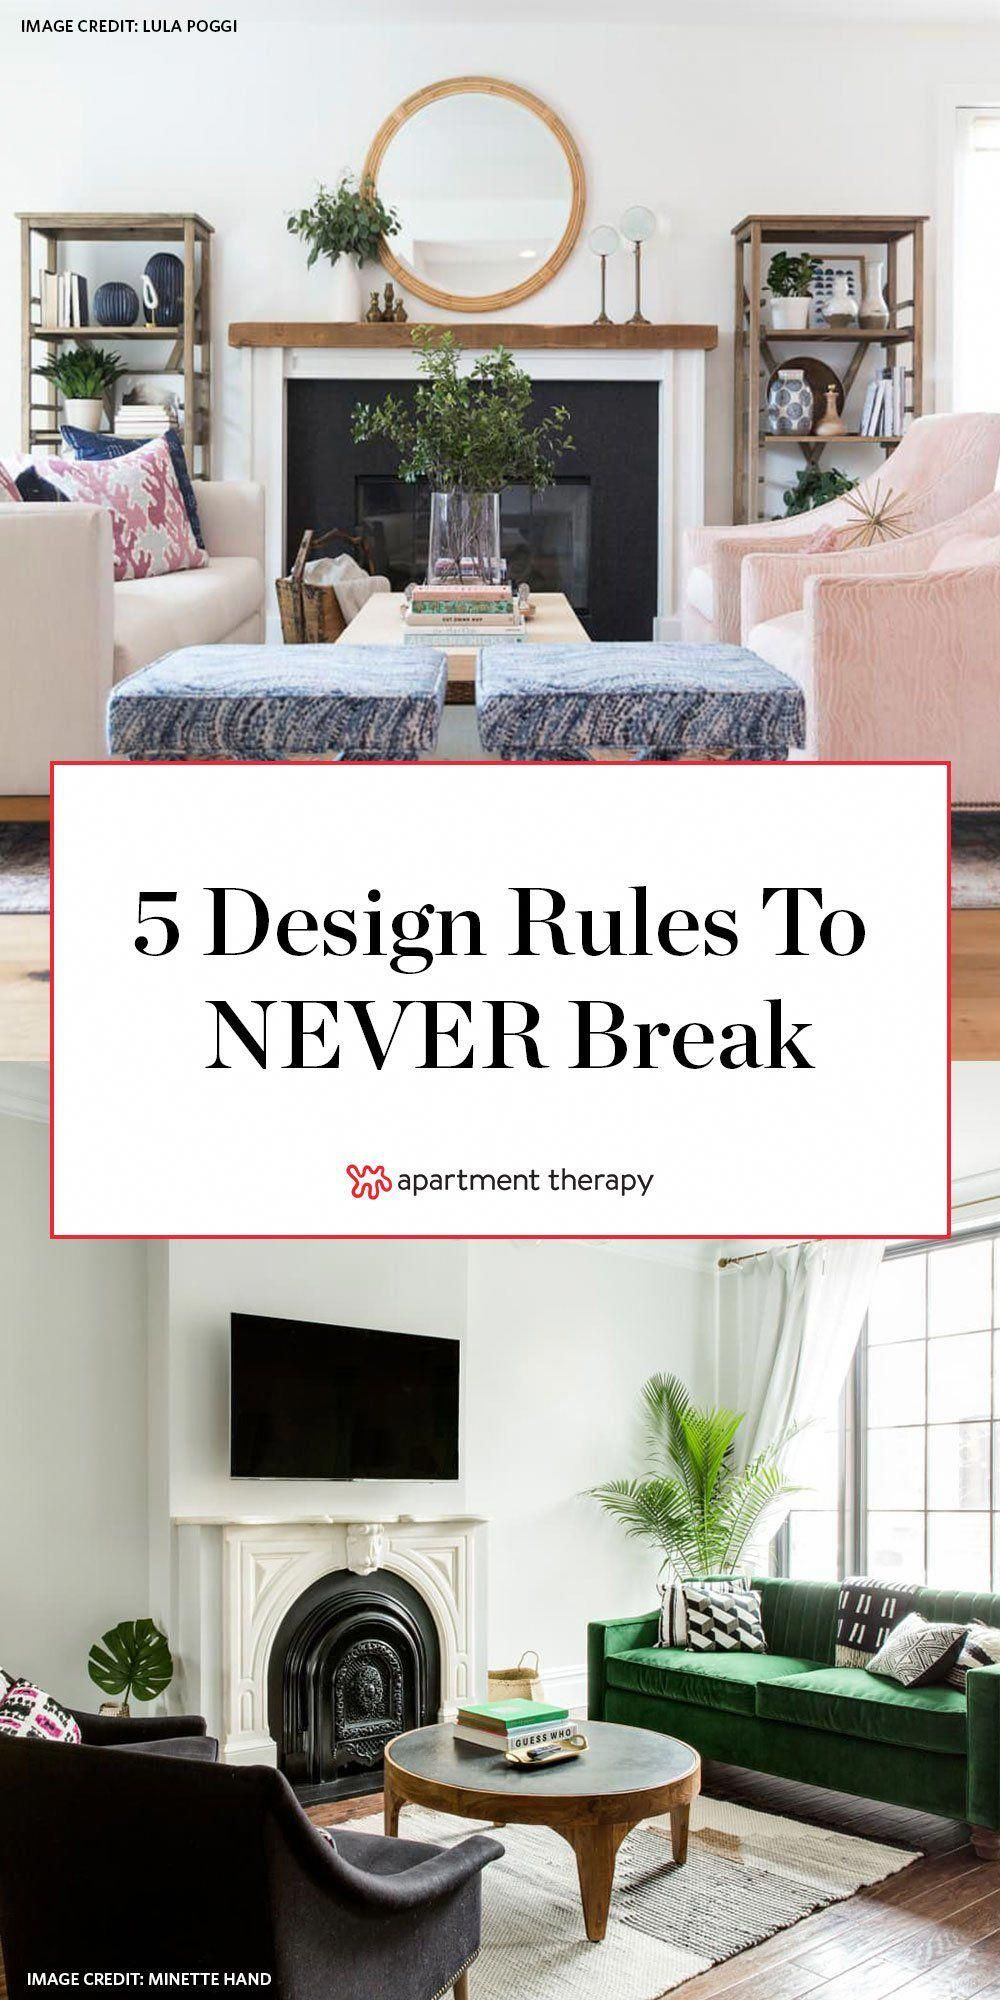 We're all about breaking the rules for the sake of putting your own touch on a space, but these five design commandments are non-negotiable. #designrules #interiordesign #designtips #designhacks #designtrends #HomeDecorAccessories